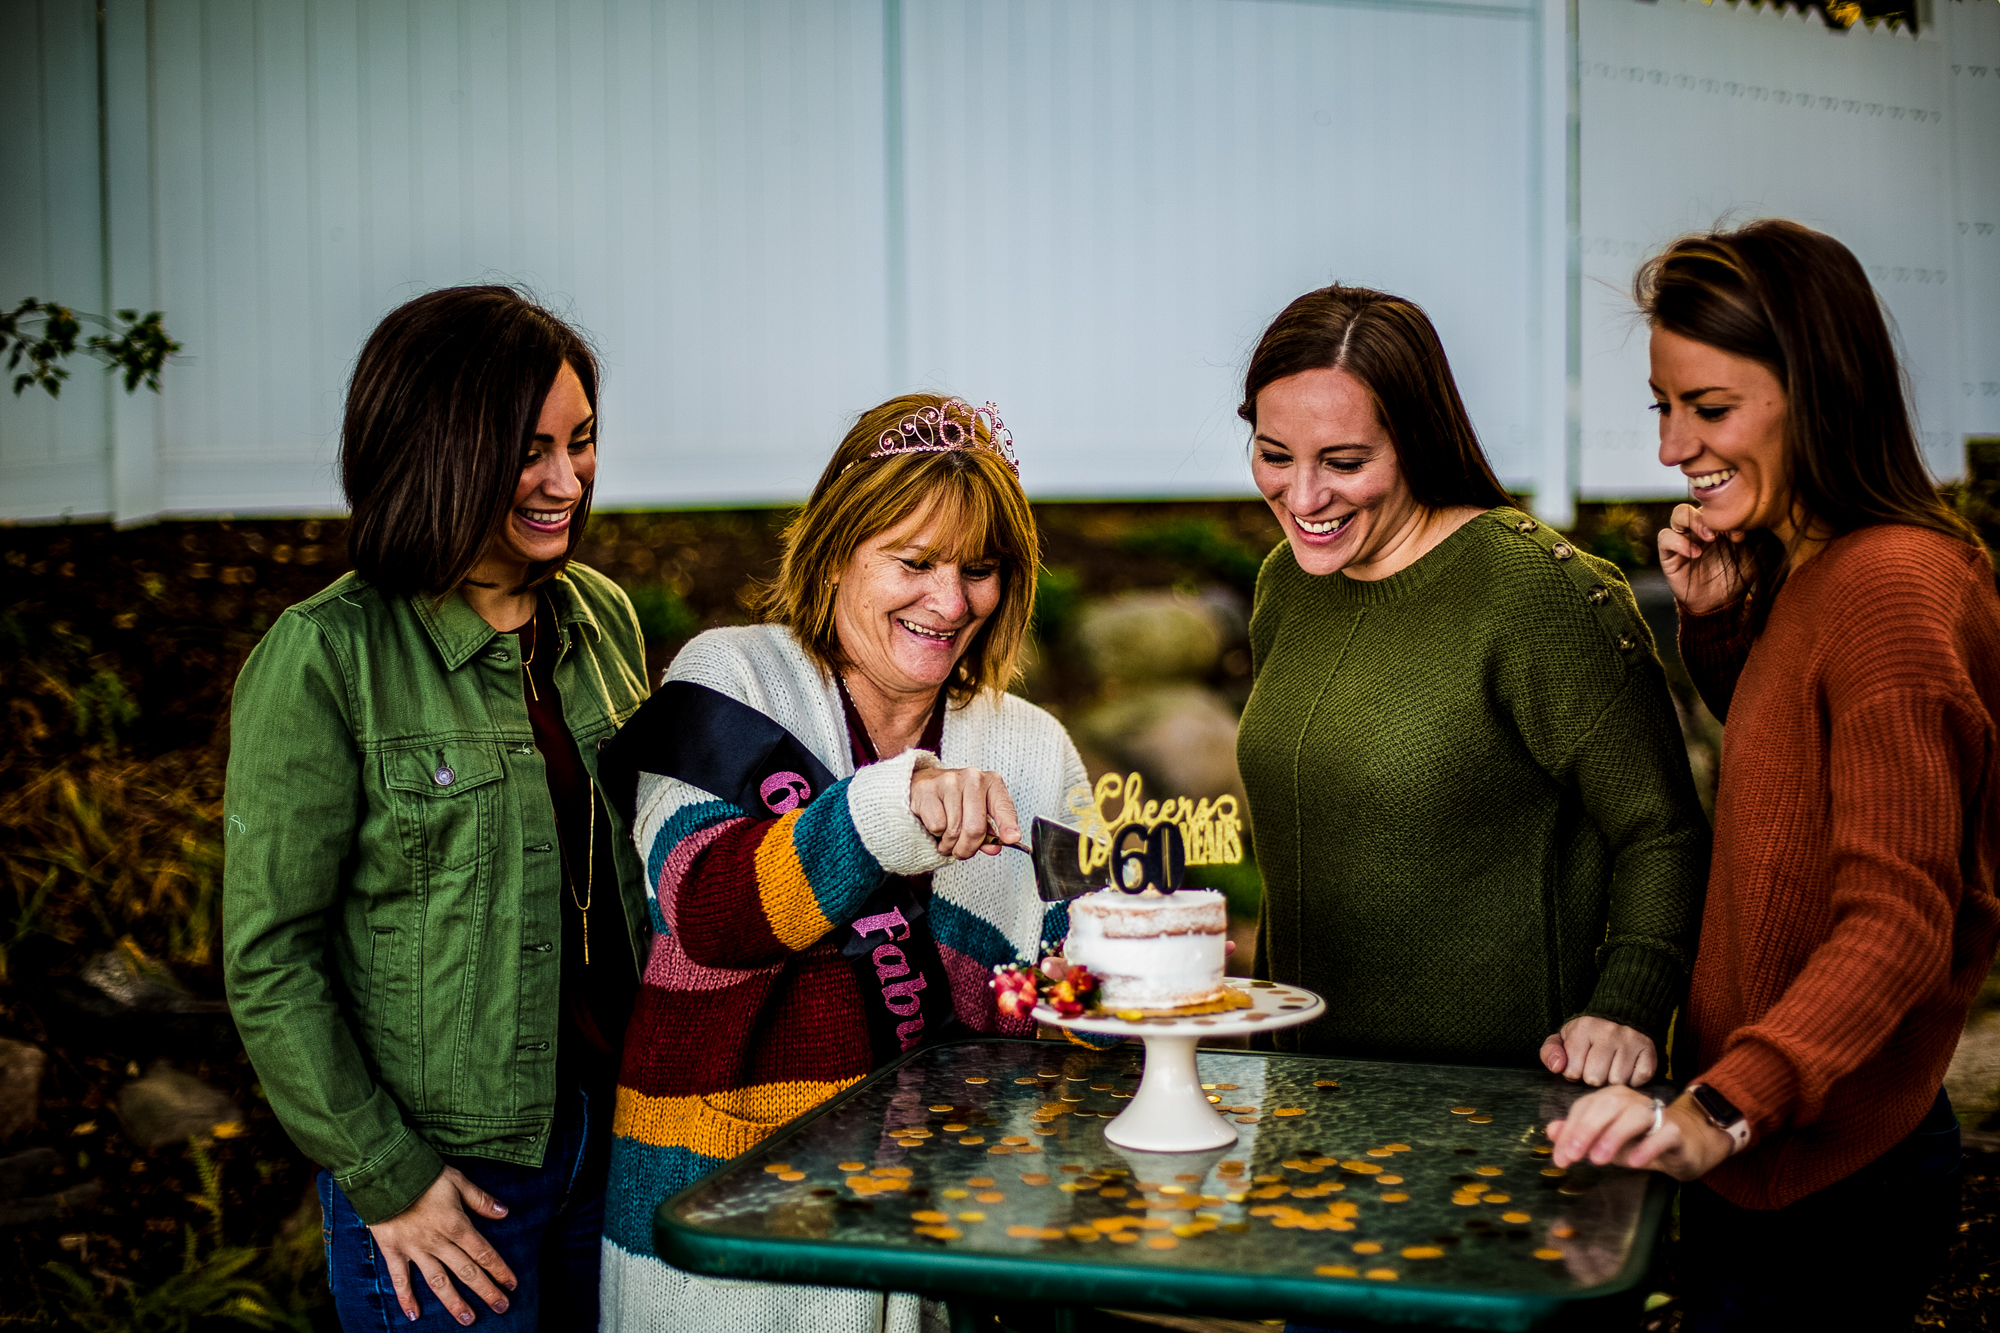 Mom cuts cake for 60th birthday celebration with her daughters in North East, PA